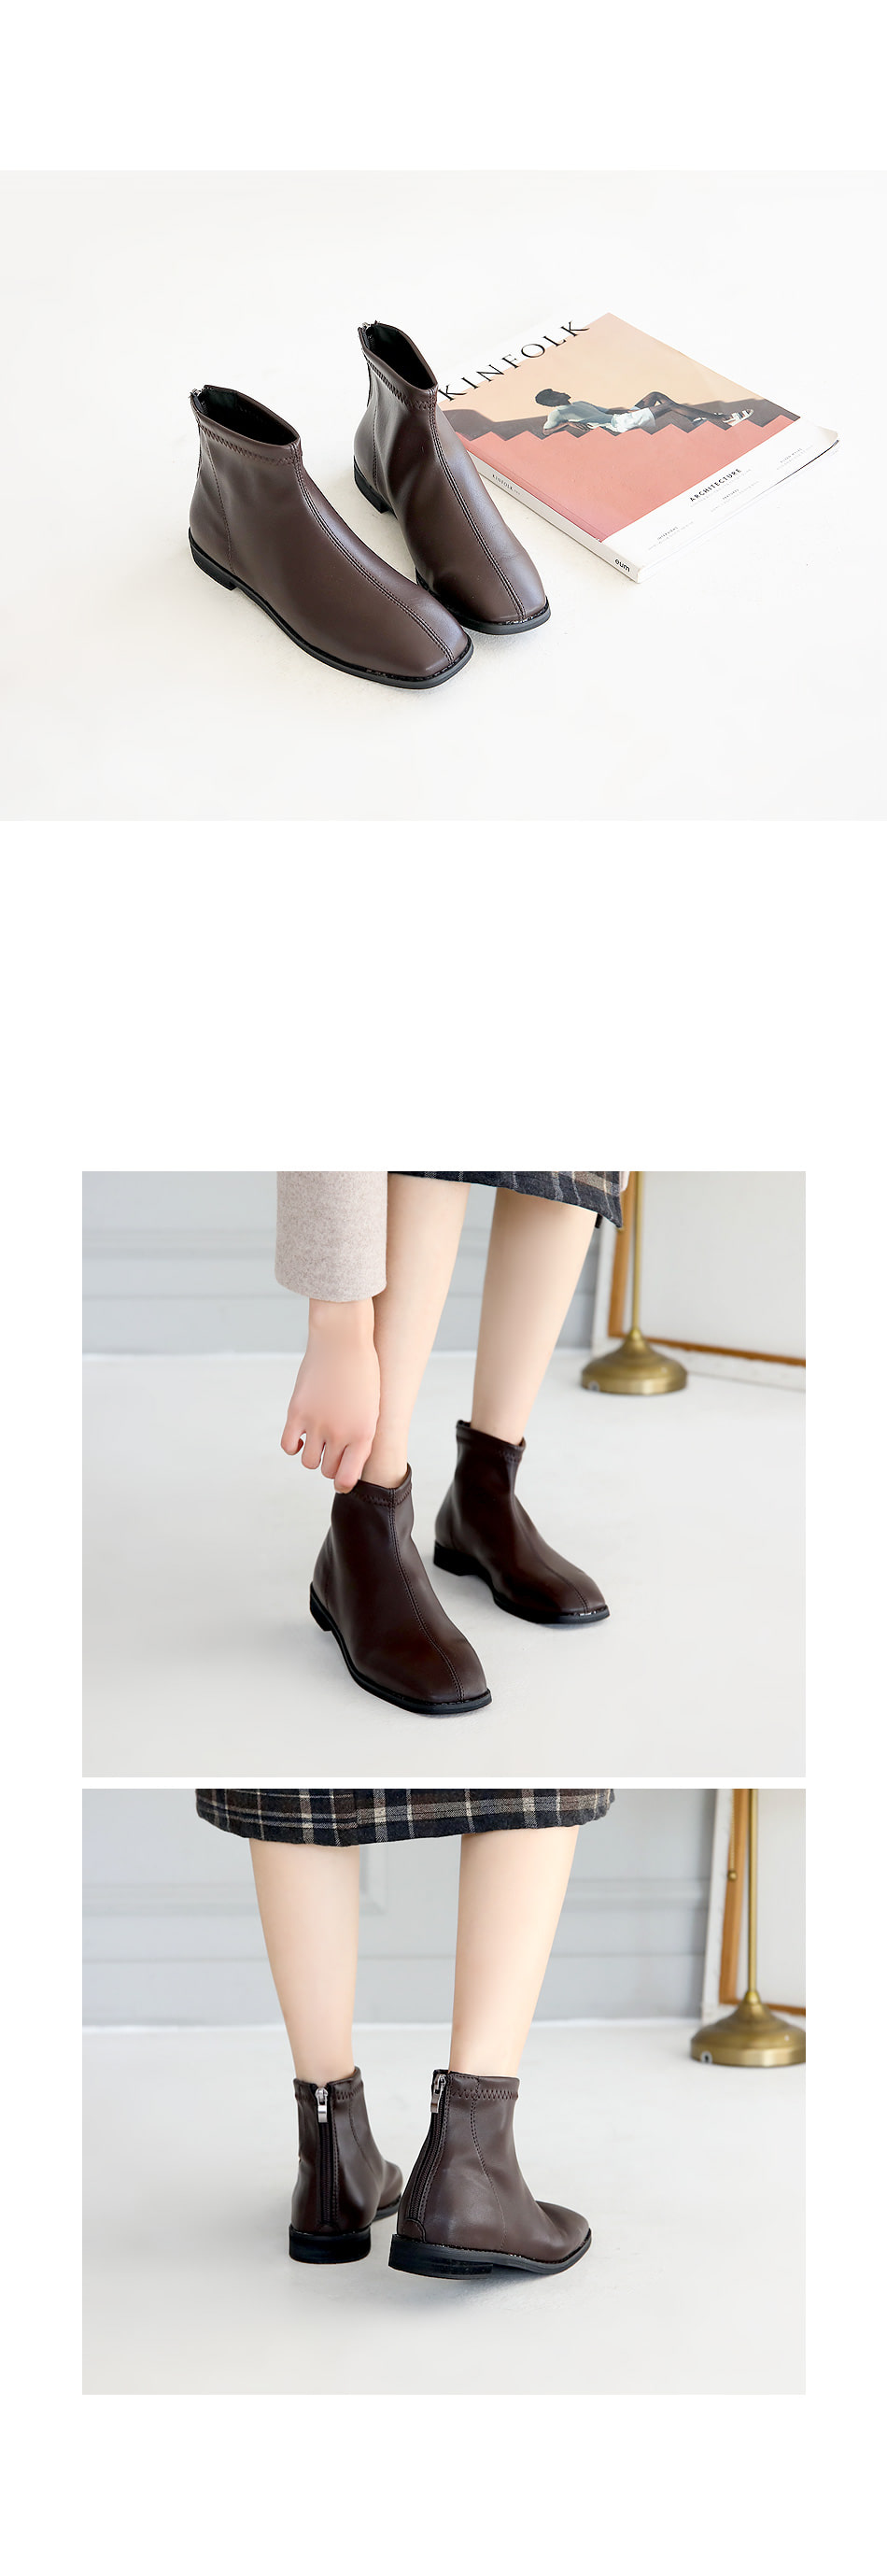 Nabenz Ankle Boots 2cm